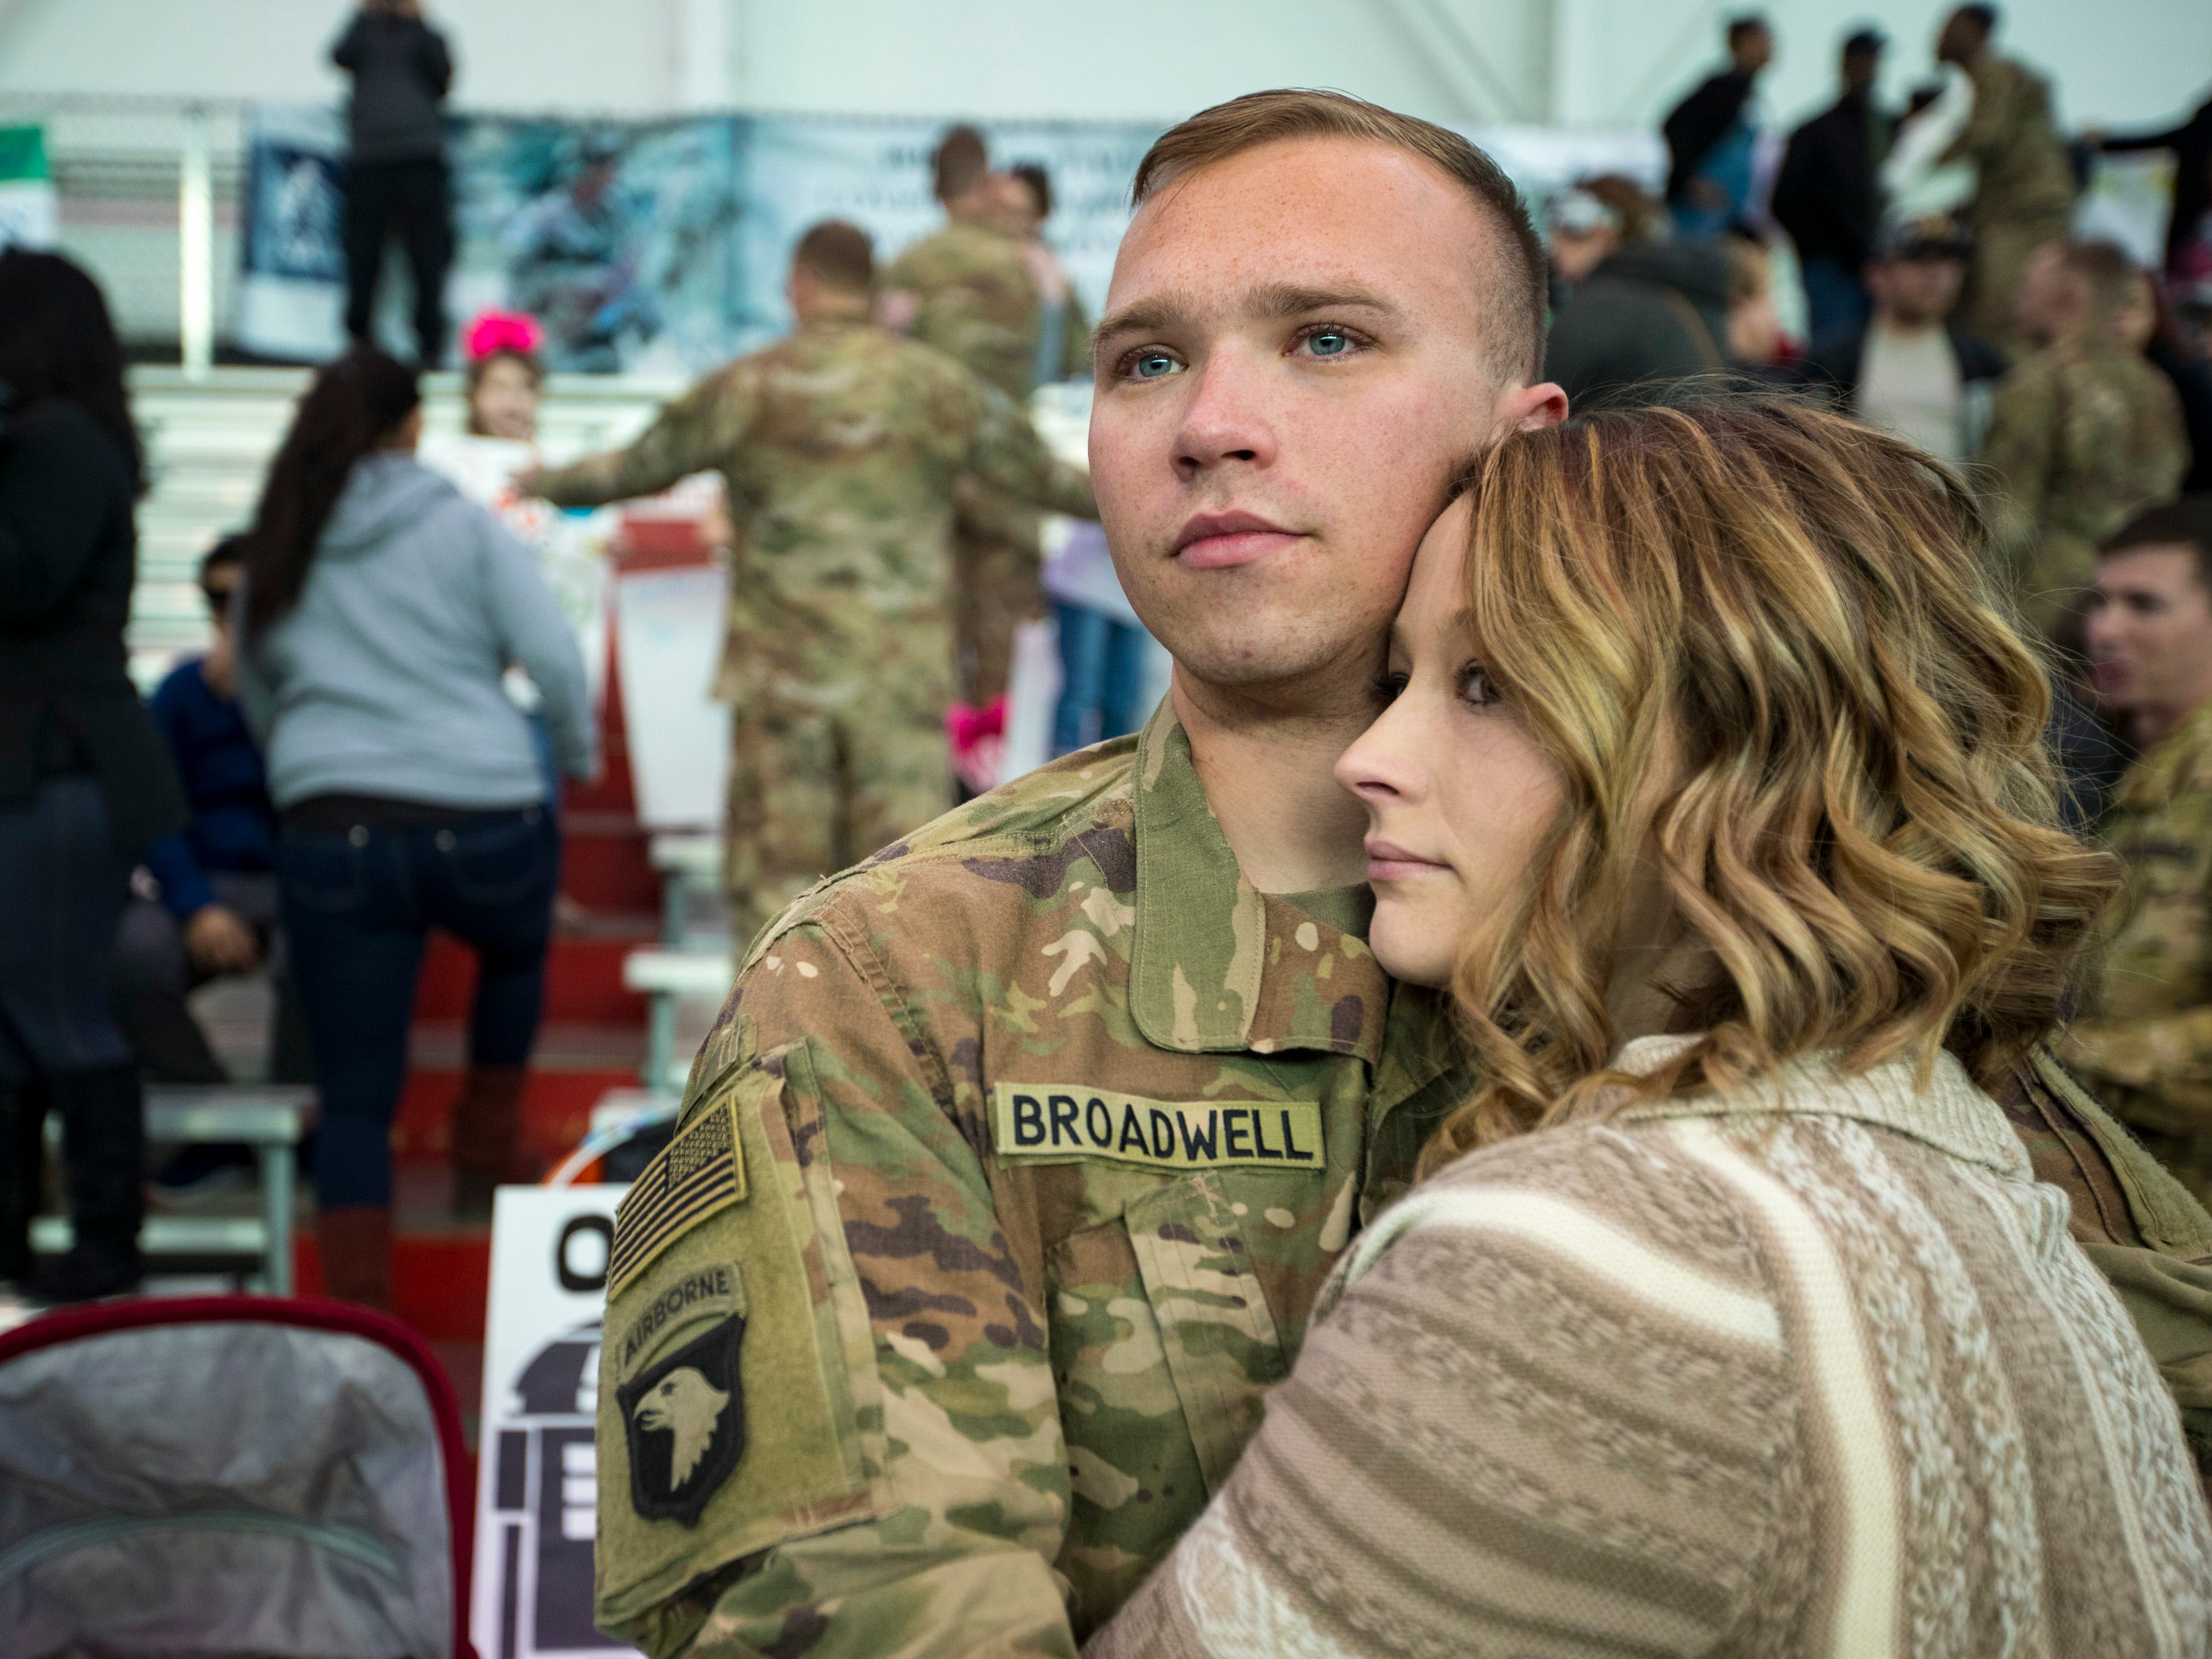 Sgt. Cary Broadwell shares a quite moment with Brooke Broadwell during a homecoming ceremony for members of the 101st Combat Aviation Brigade and 101st Sustainment Brigade at Fort Campbell in Clarksville on Thursday, Feb. 21, 2019. The soldiers were returning from a nine-month deployment to Afghanistan.